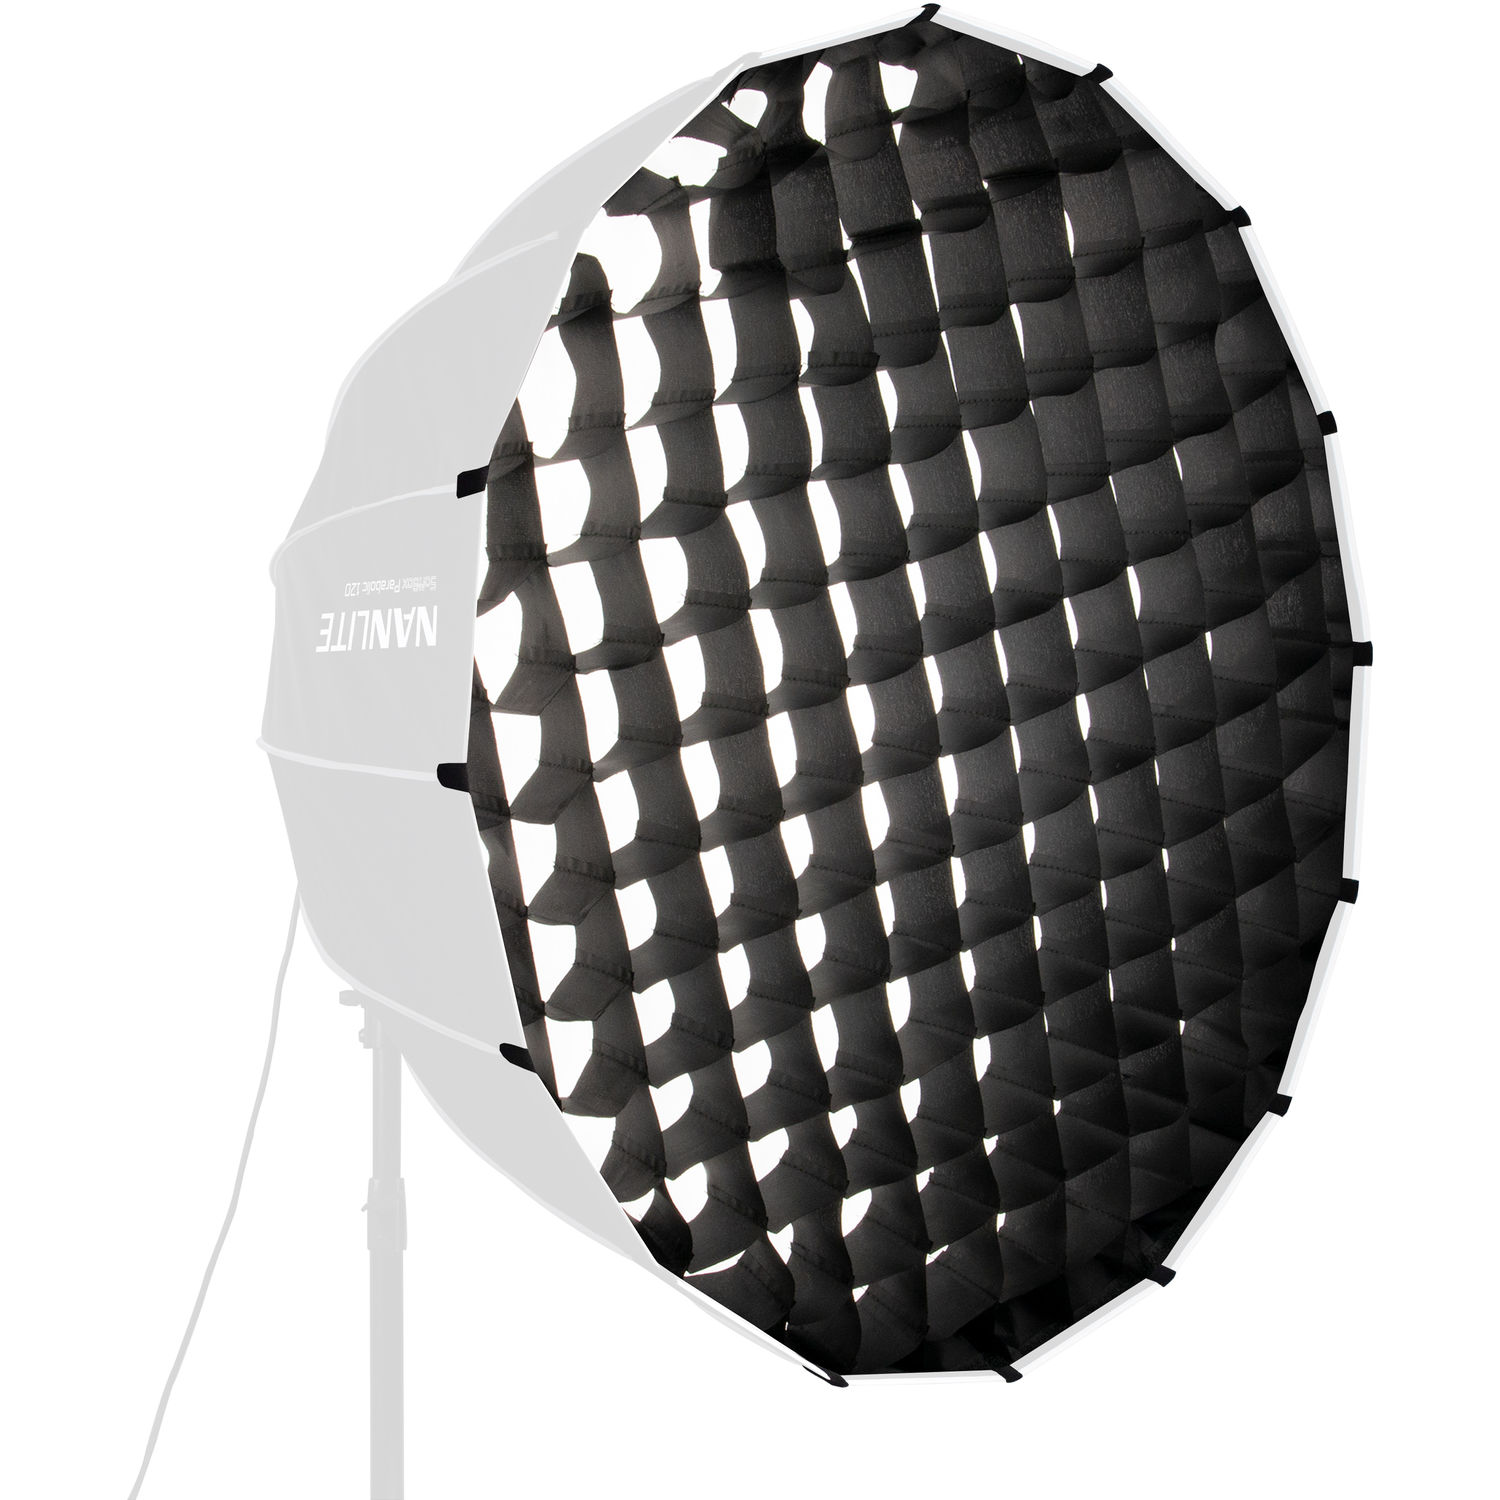 Nanlite EC-PR120 Fabric Grid for Parabolic Light Dome Softbox 120cm